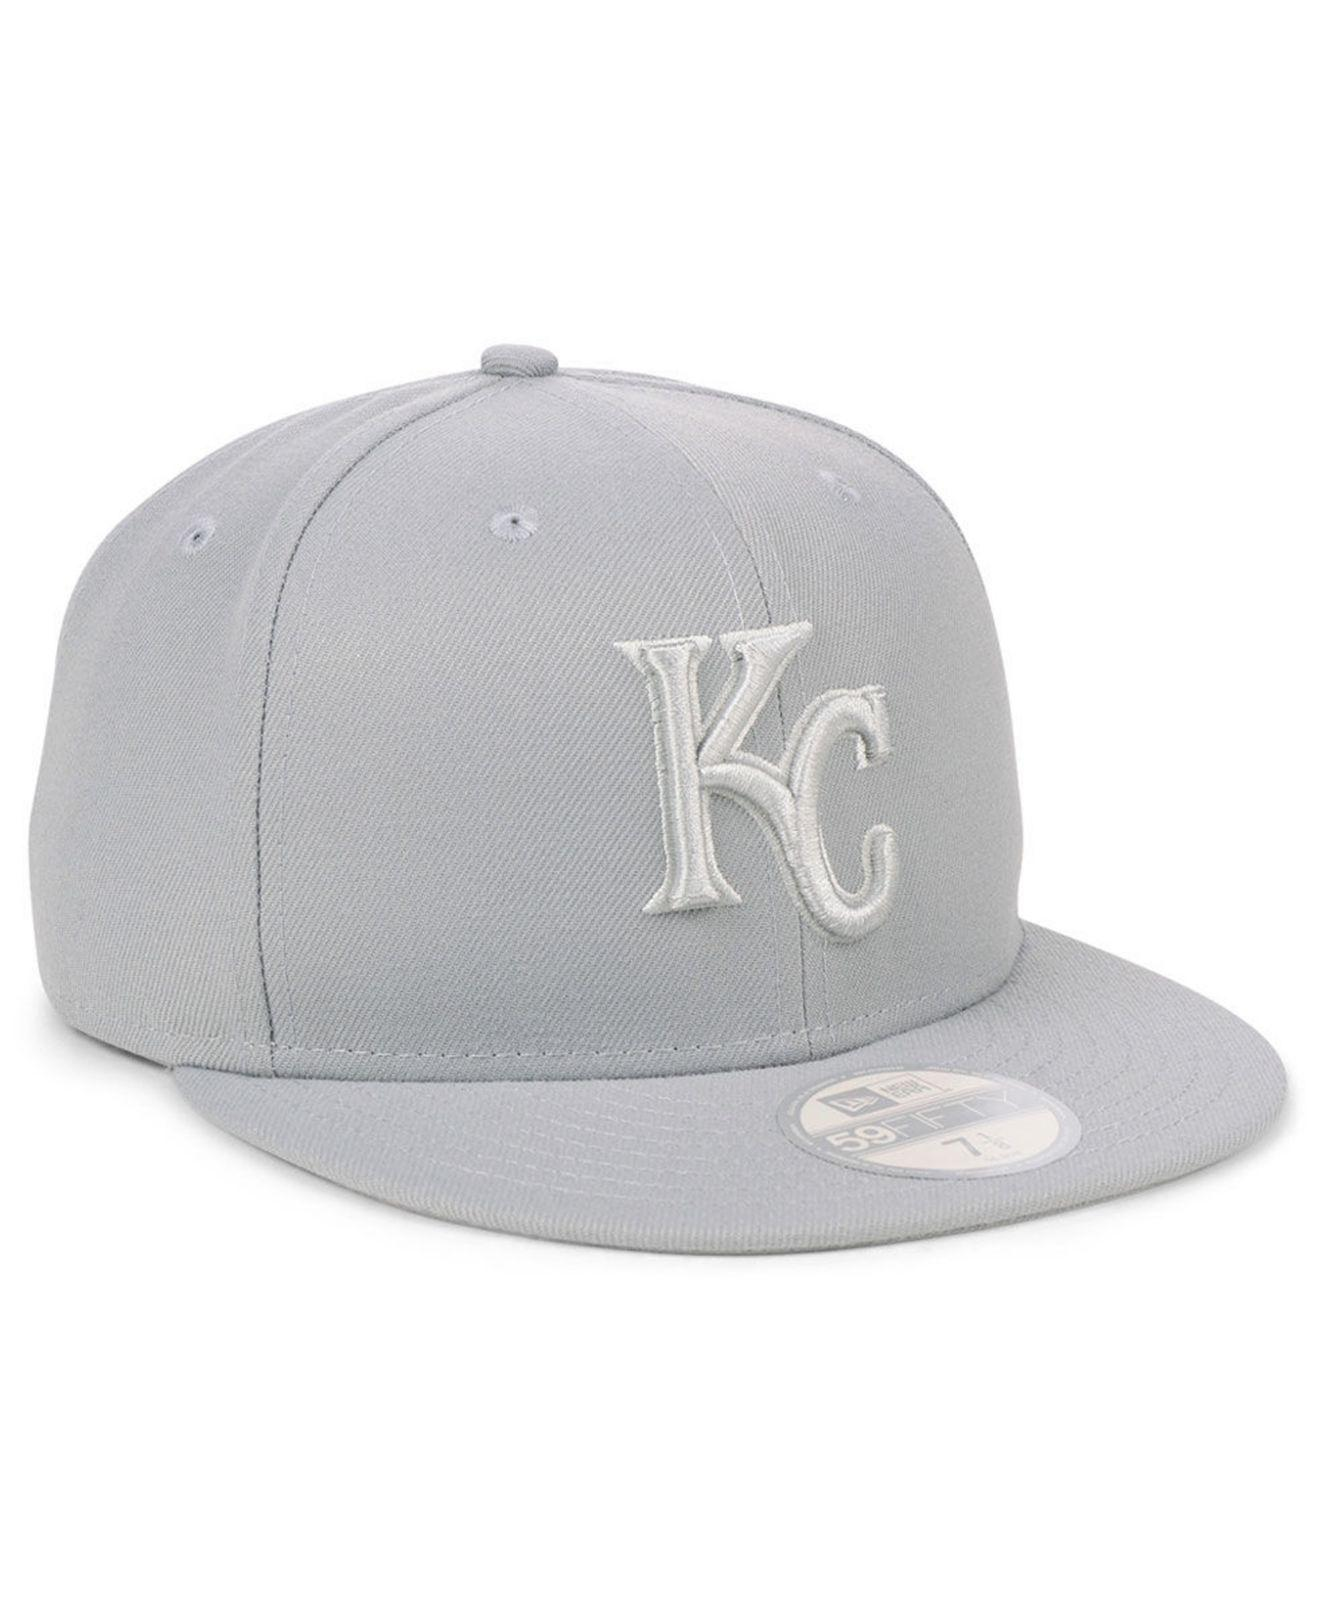 huge discount af02a 94e38 ... order kansas city royals fall prism pack 59fifty fitted cap for men .  view fullscreen ecd59